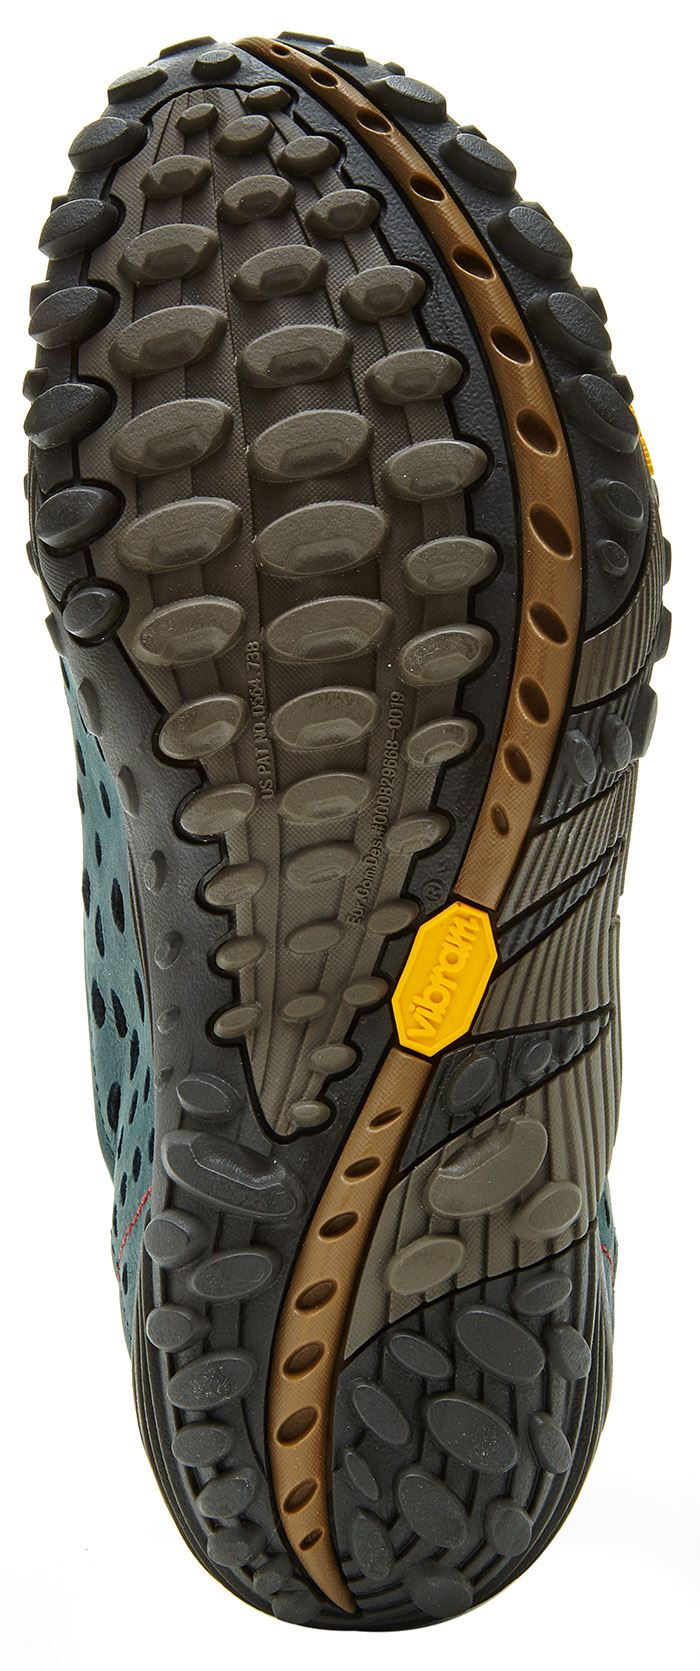 Merrell-Intercept-Hiking-Shoes-in-Moth-Brown-amp-Blue-Wing-amp-Black thumbnail 9